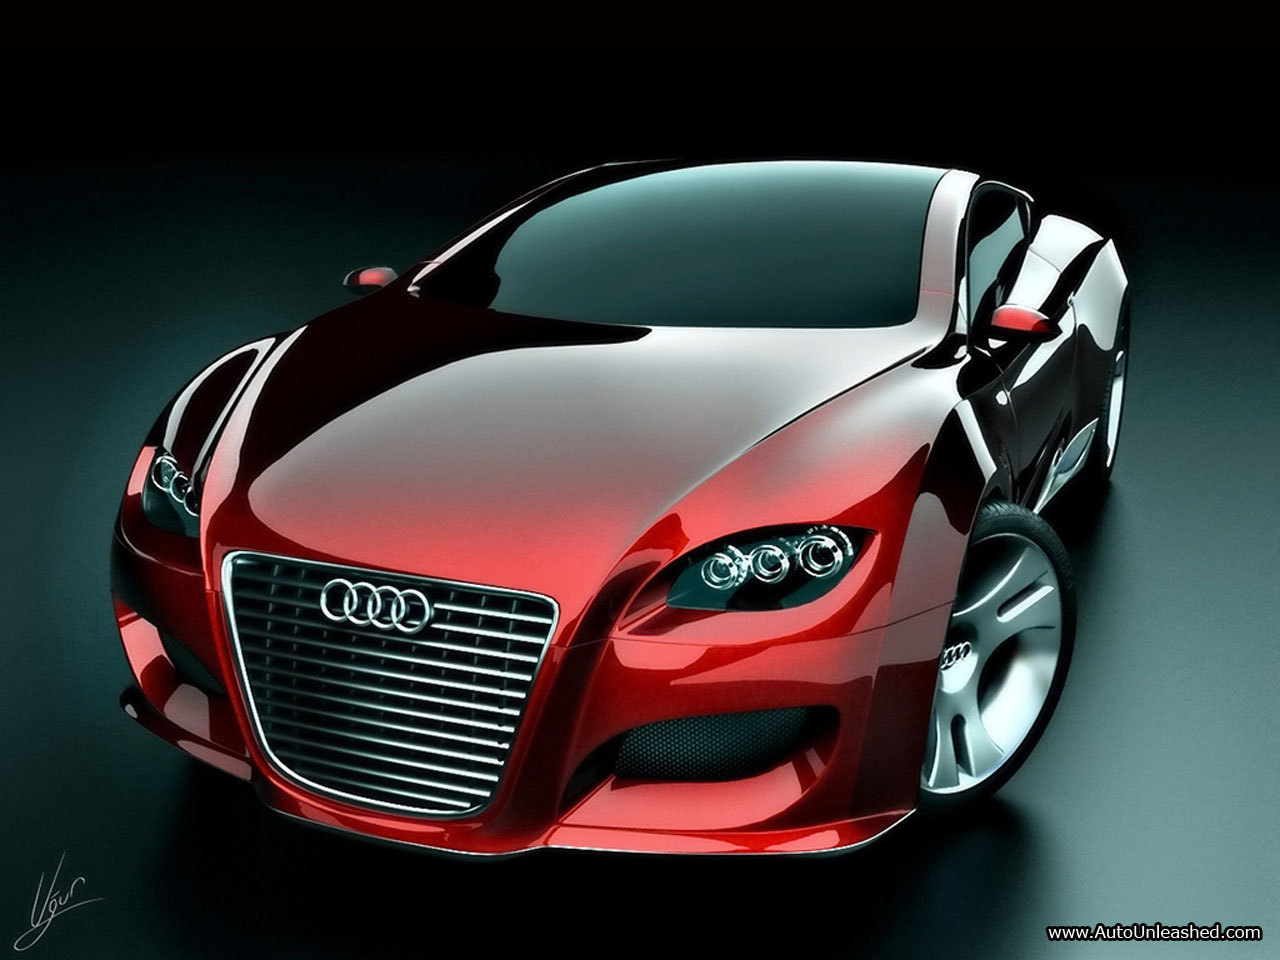 Images Of Audi Cars Cars Images Audi Audi Cars